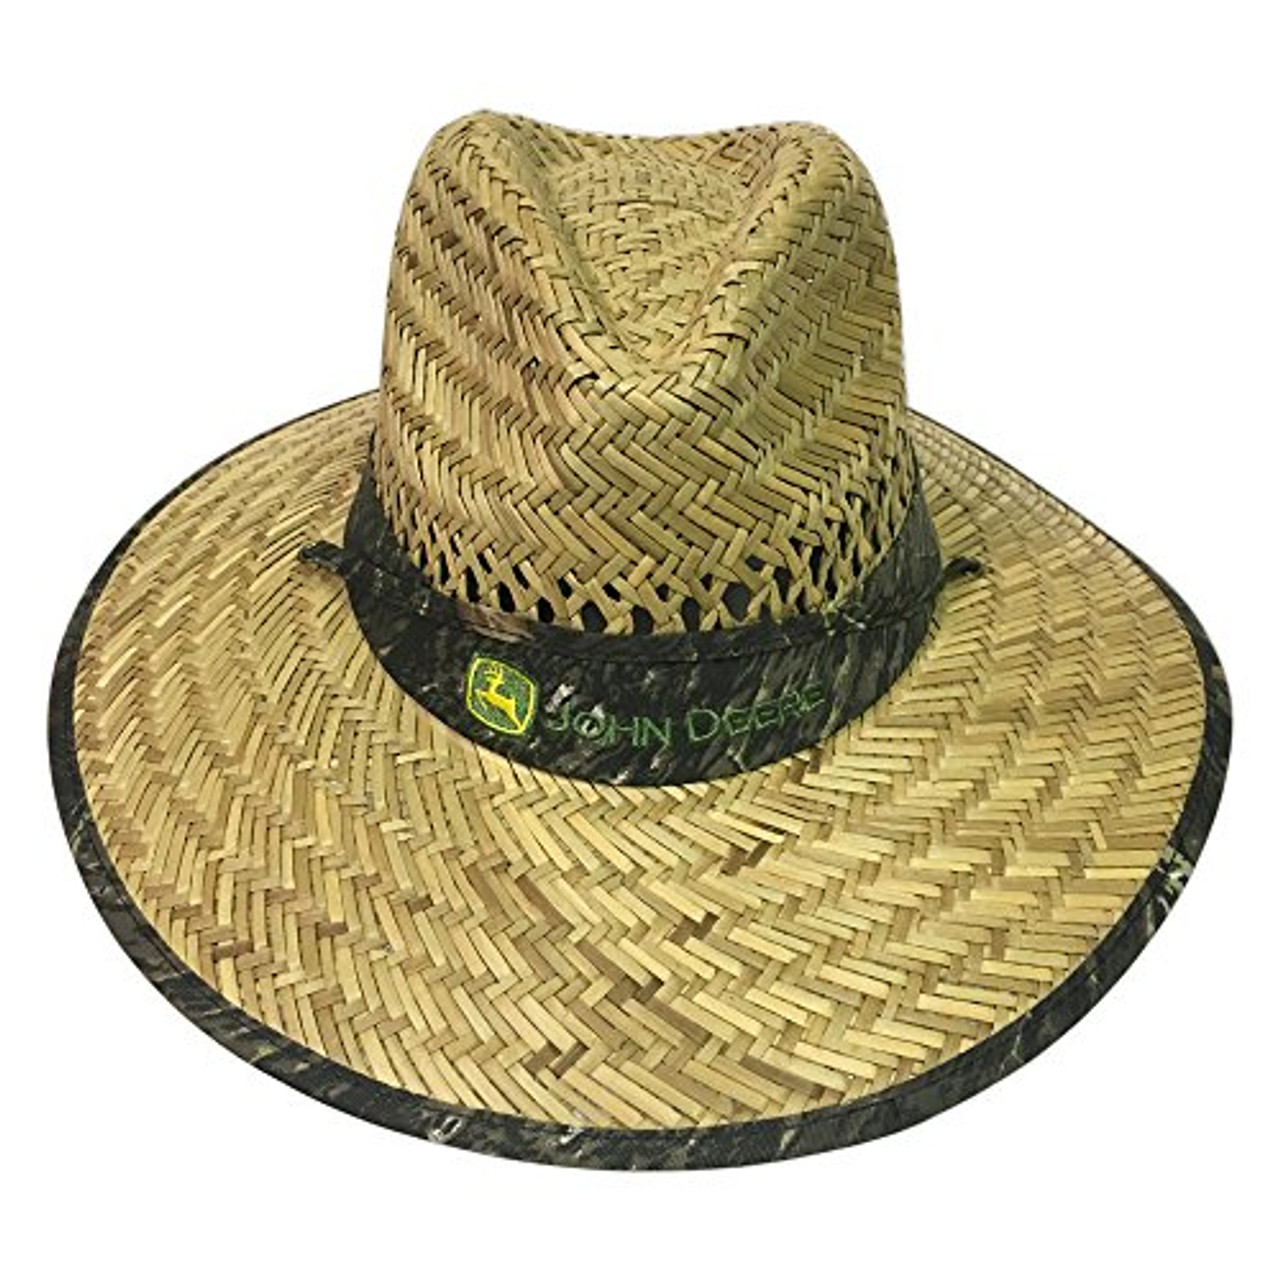 John Deere Mens Straw Hat with Camo Band - Trenz Shirt Company 48119f5773e9